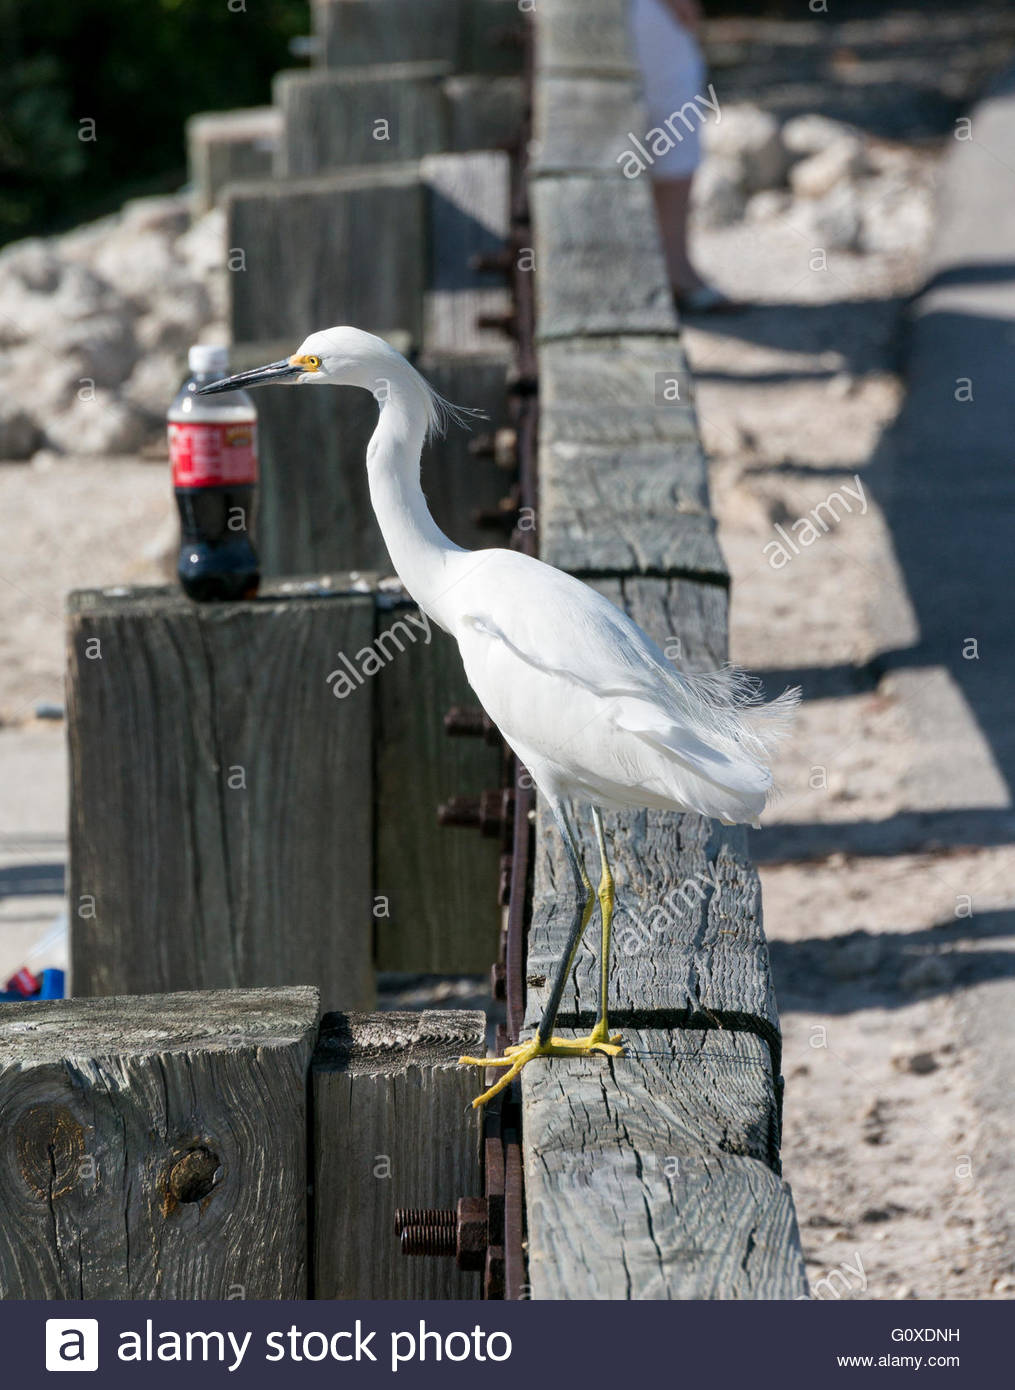 A Snowy Egret perches on a road barrier near a soda bottle at Ding Darling National Wildlife Refuge in Sanibel, - Stock Image